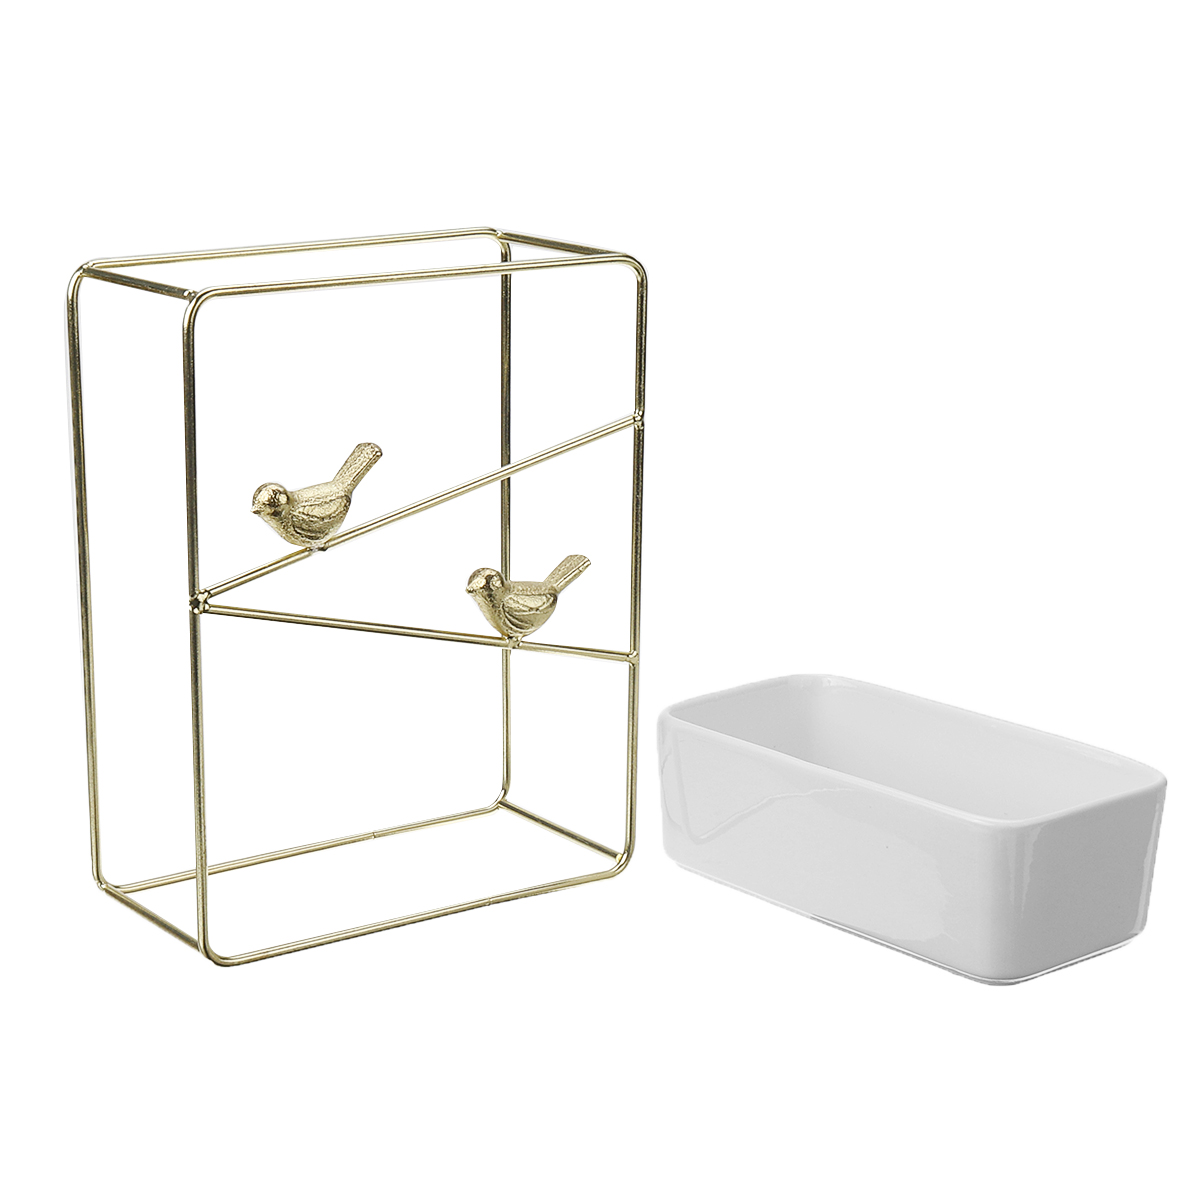 Retro Creative Flower Pot Nordic Minimalist Ins Wrought Iron Ceramic Flower Pot Gold-plated Wall Hanging Meaty Flower Pot